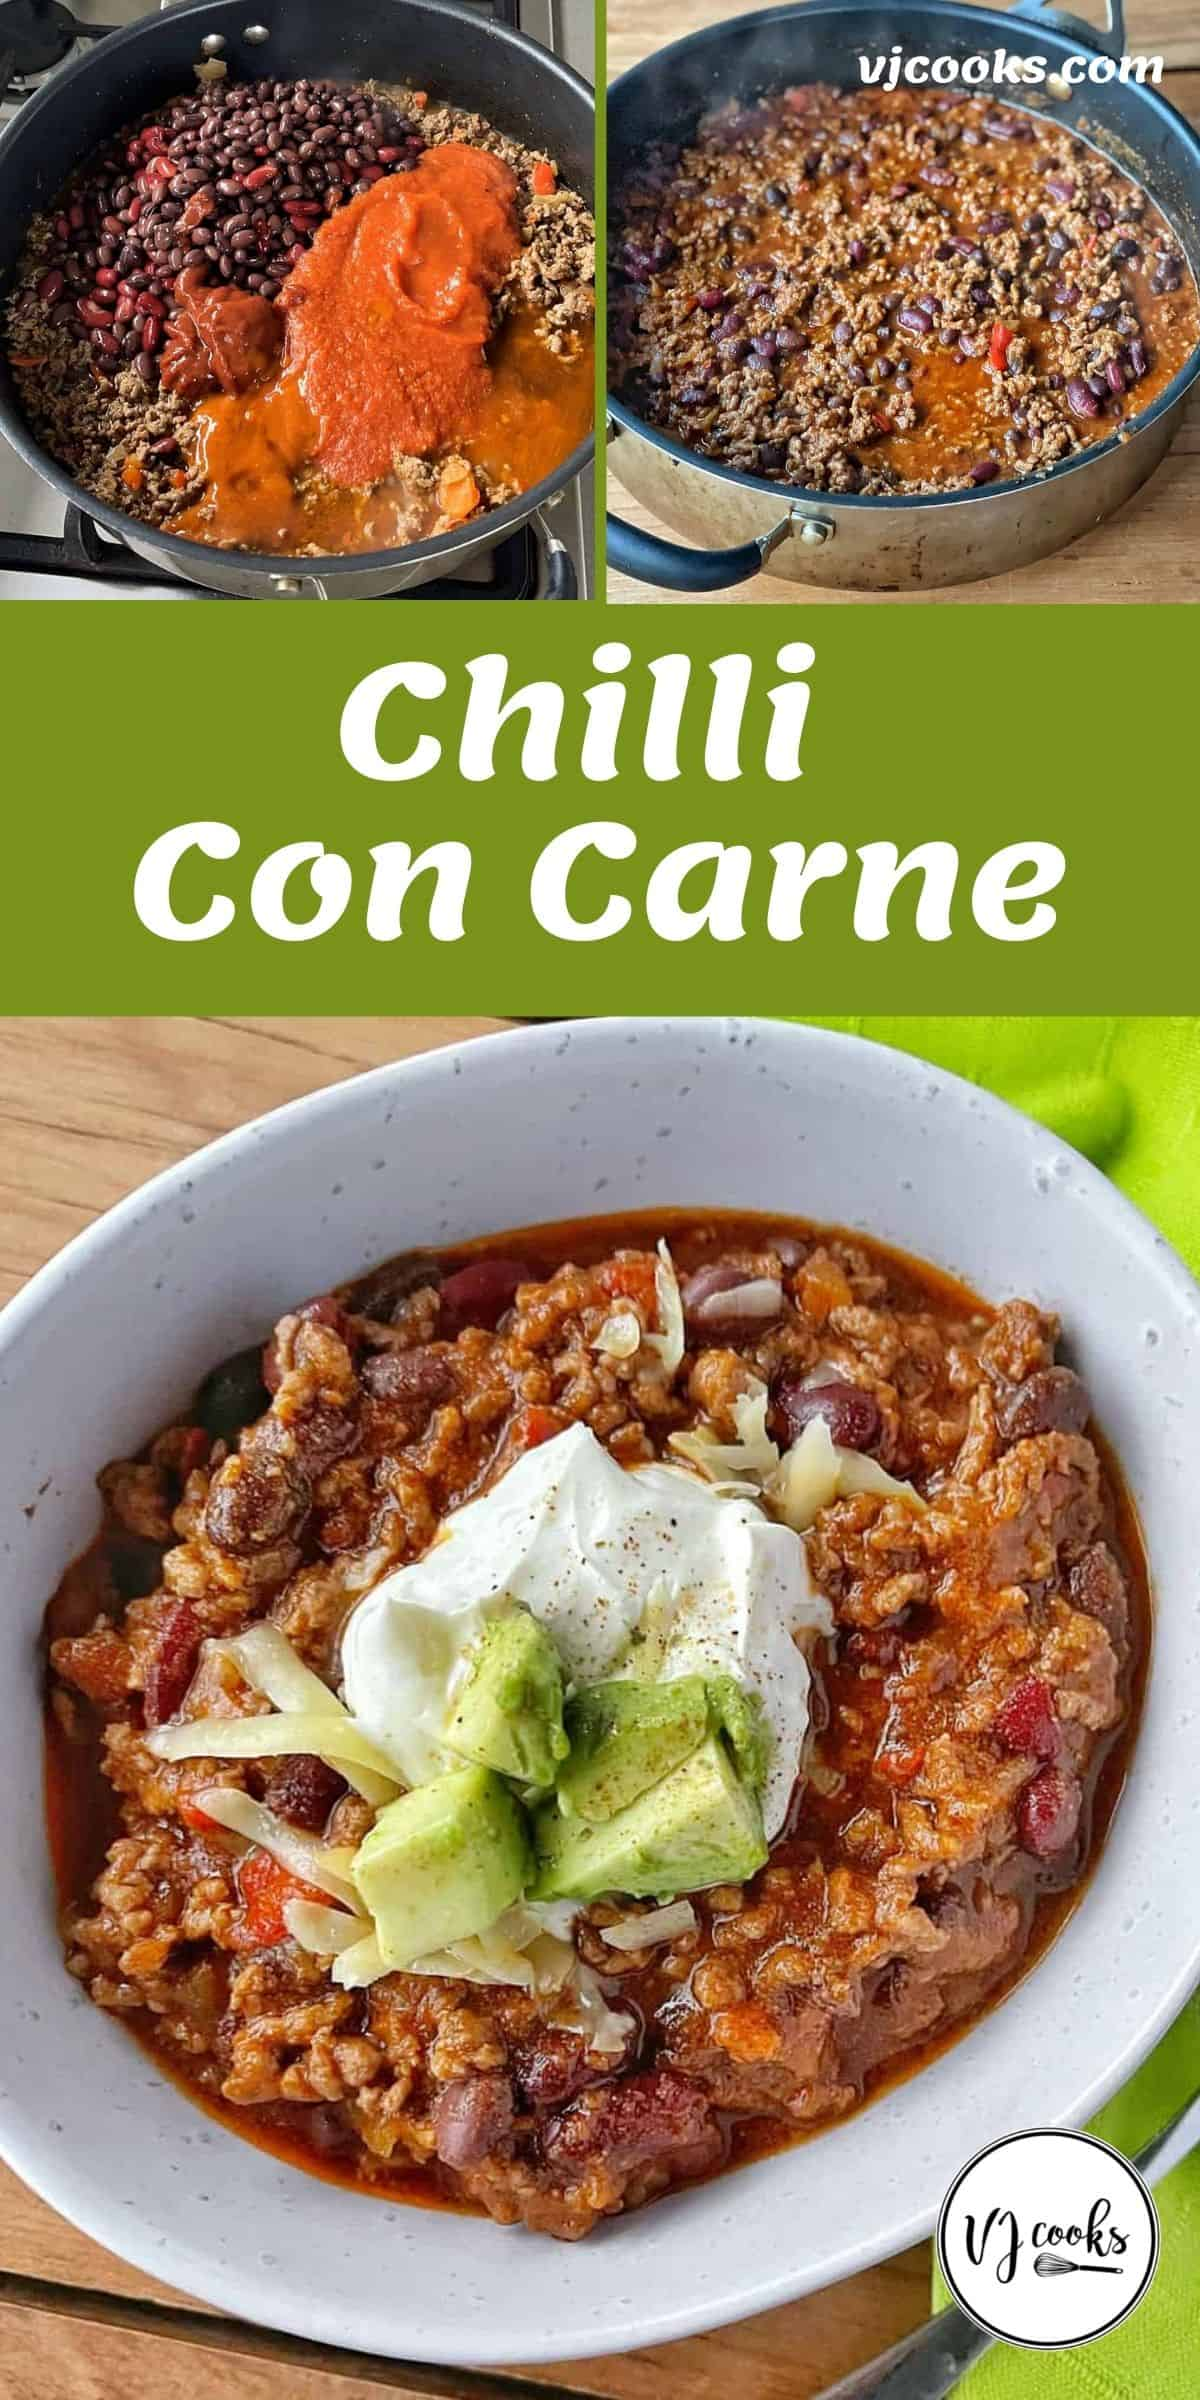 the process of making chilli con carne as well as teh finishe dproduct served in a white bowl.